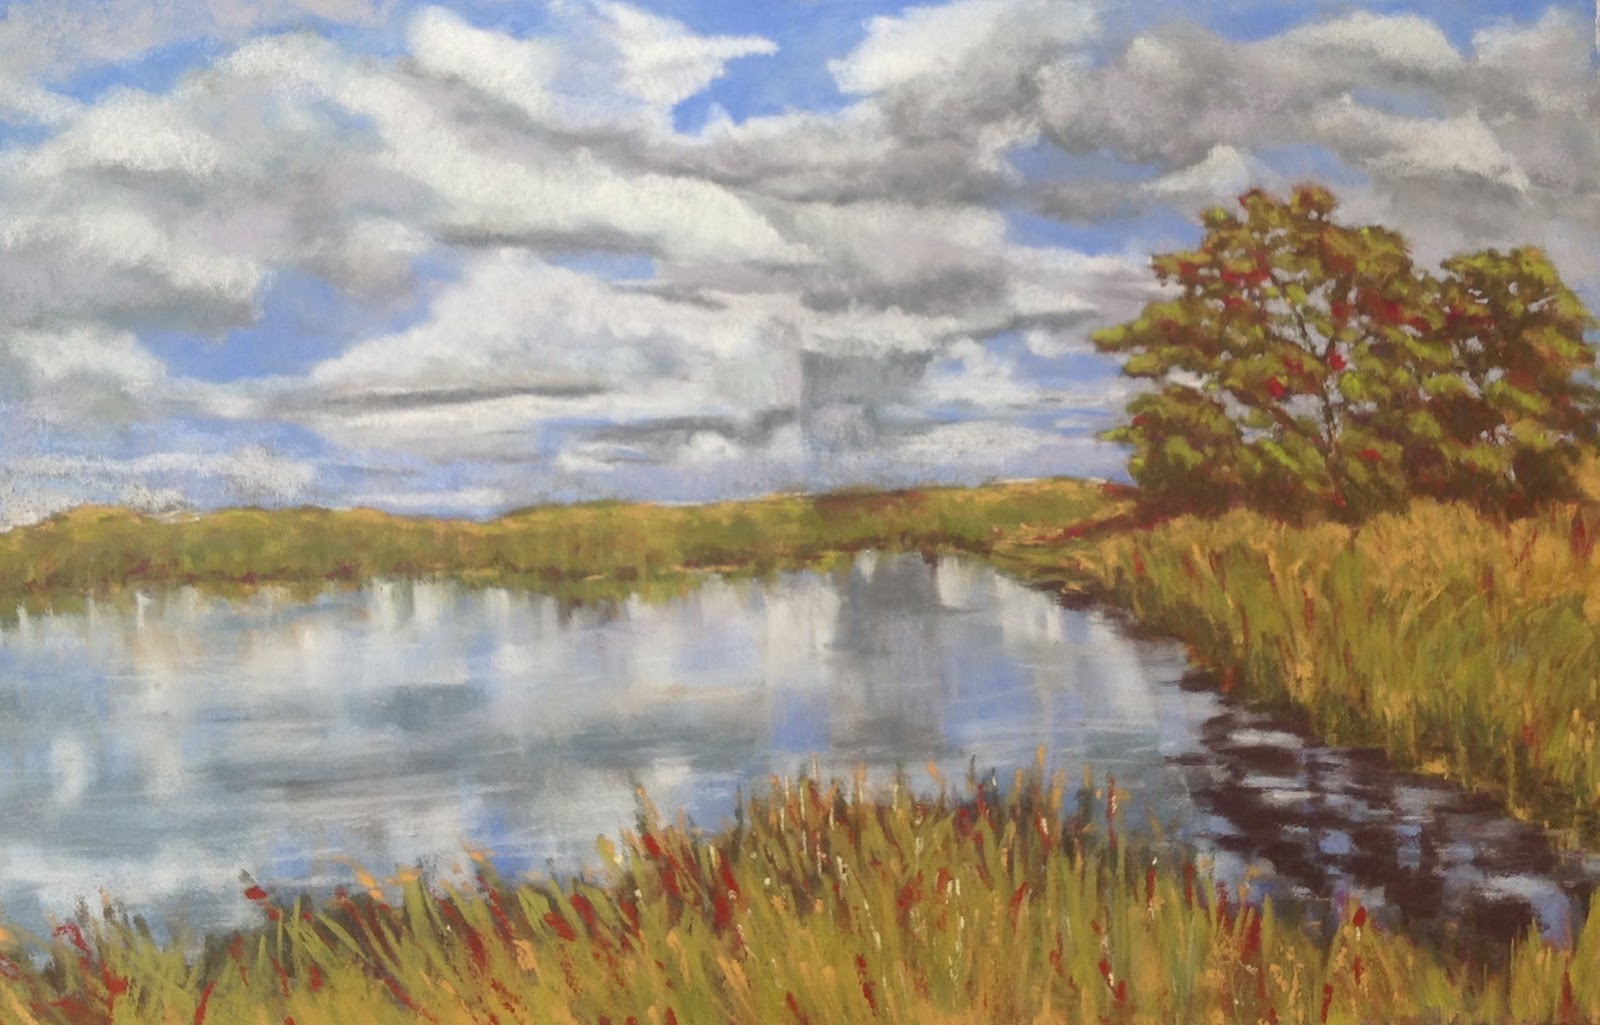 Donna Theresa - Cloud and Marsh Study